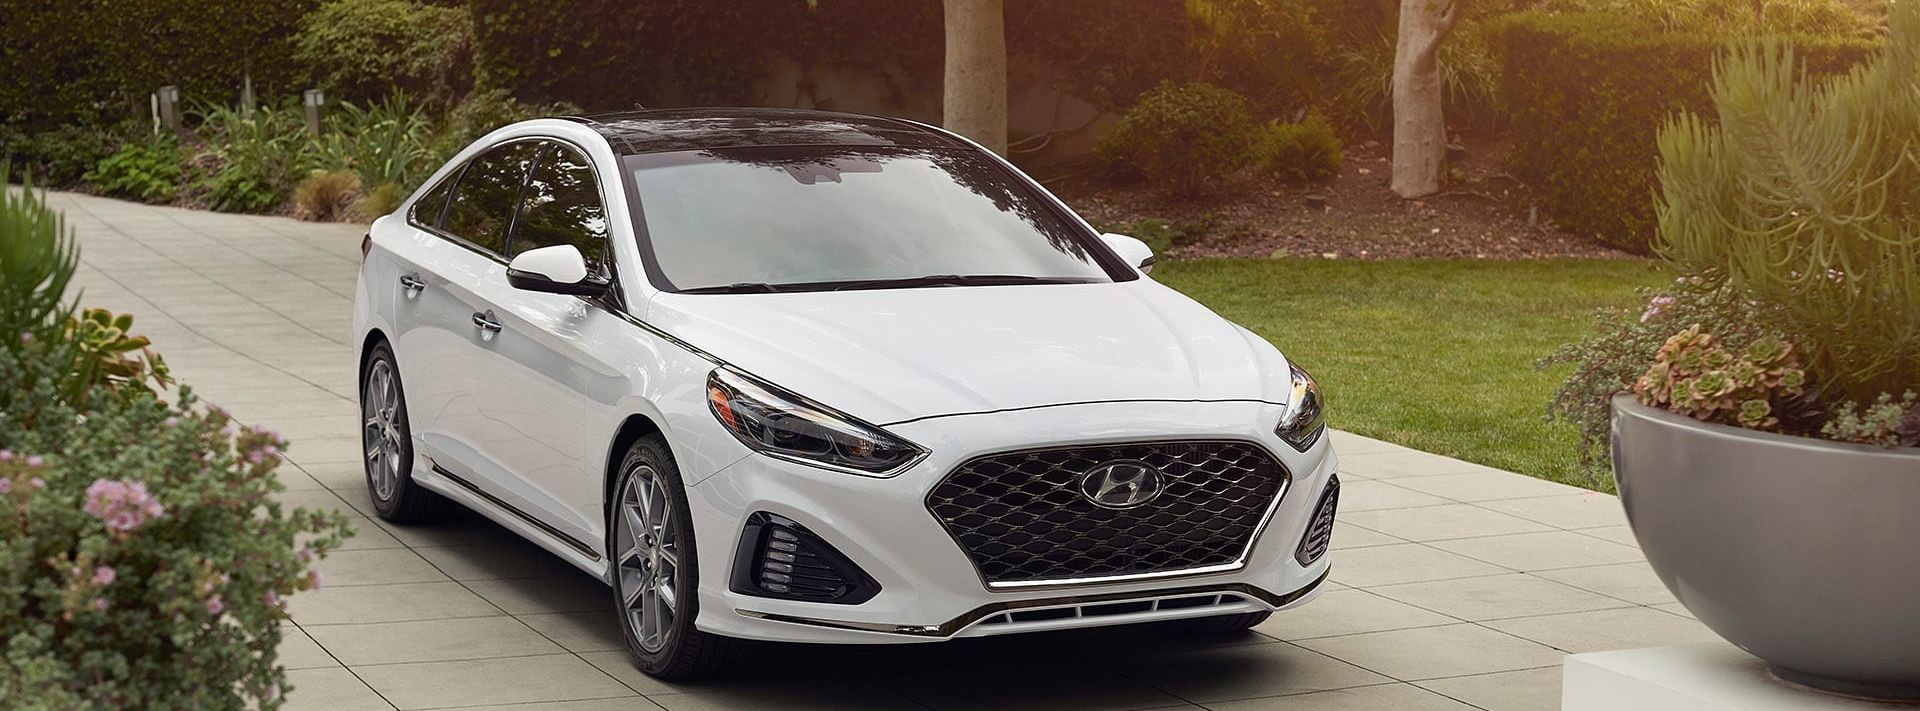 2019 Hyundai Sonata Leasing near Bowie, MD